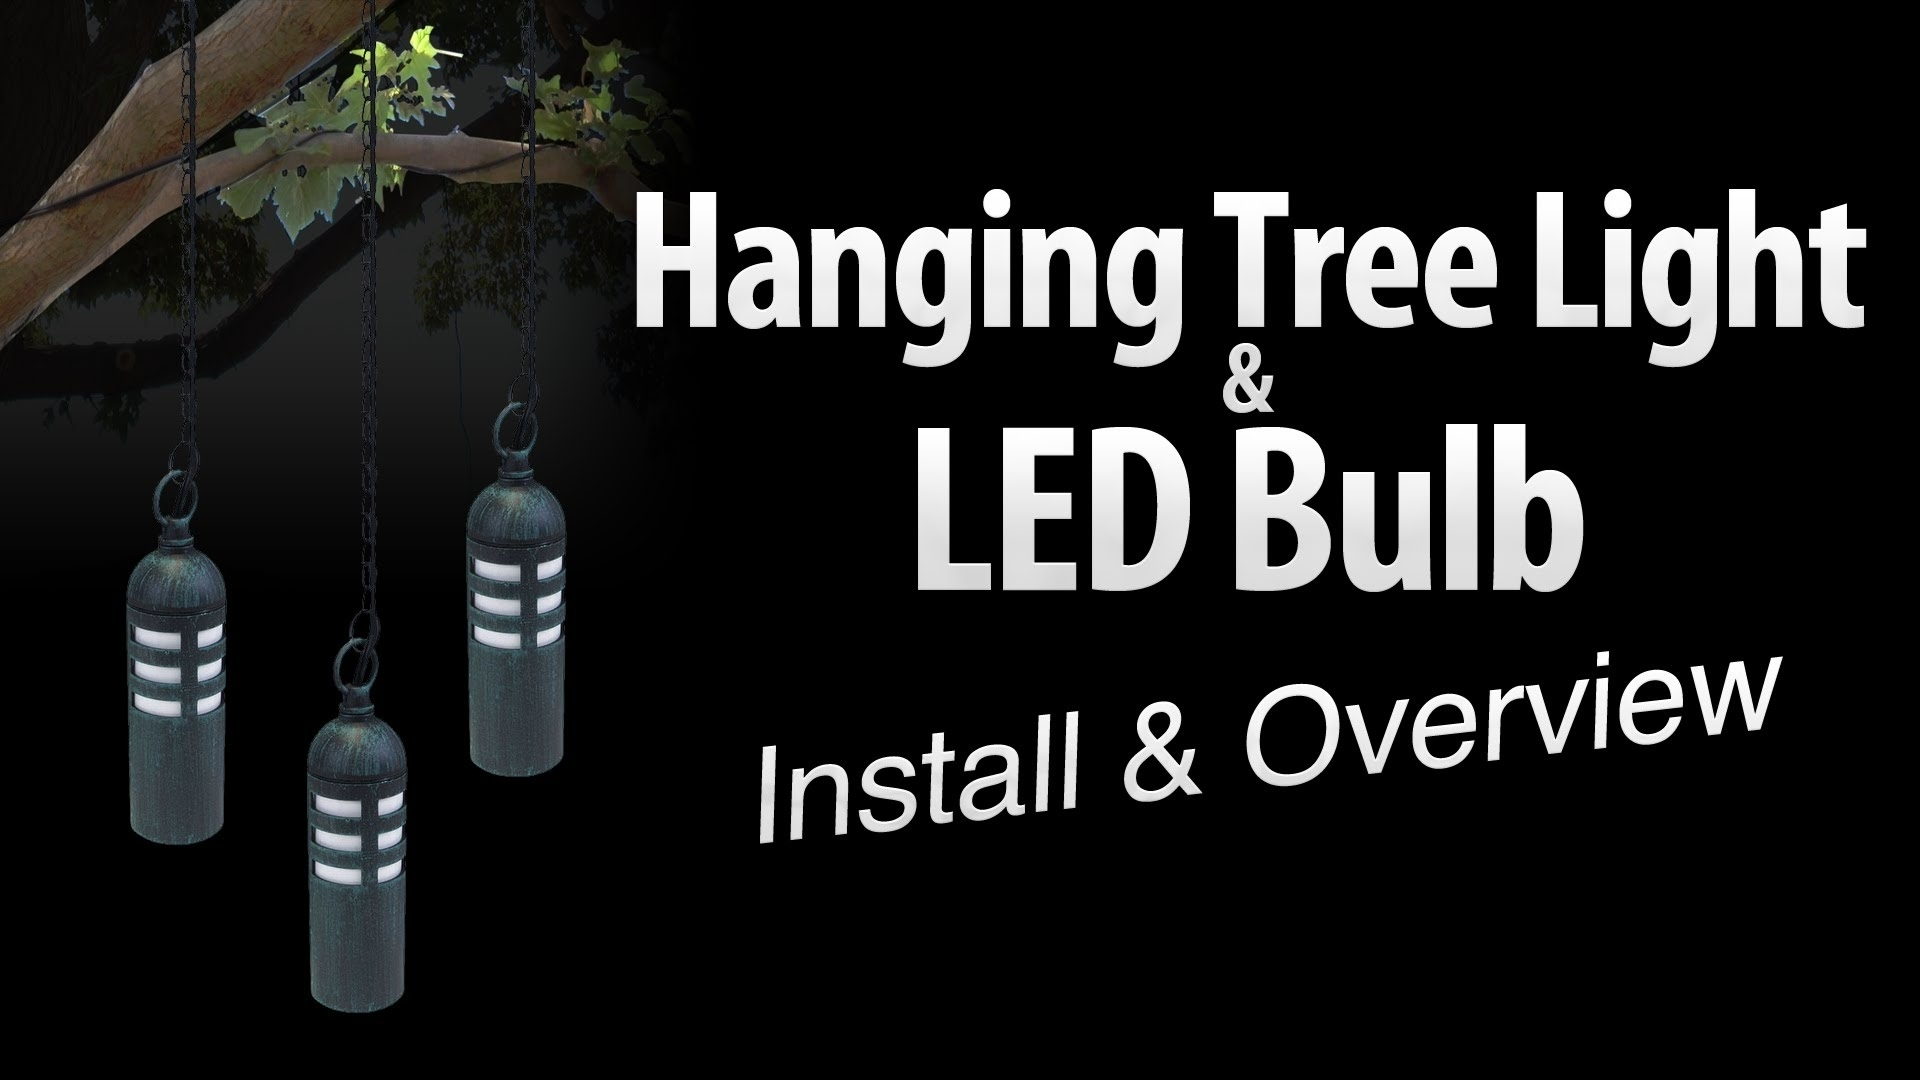 Hanging Tree Light & Led Light Bulb Install & Overviewtotal within Outdoor Lanterns For Trees (Image 10 of 20)